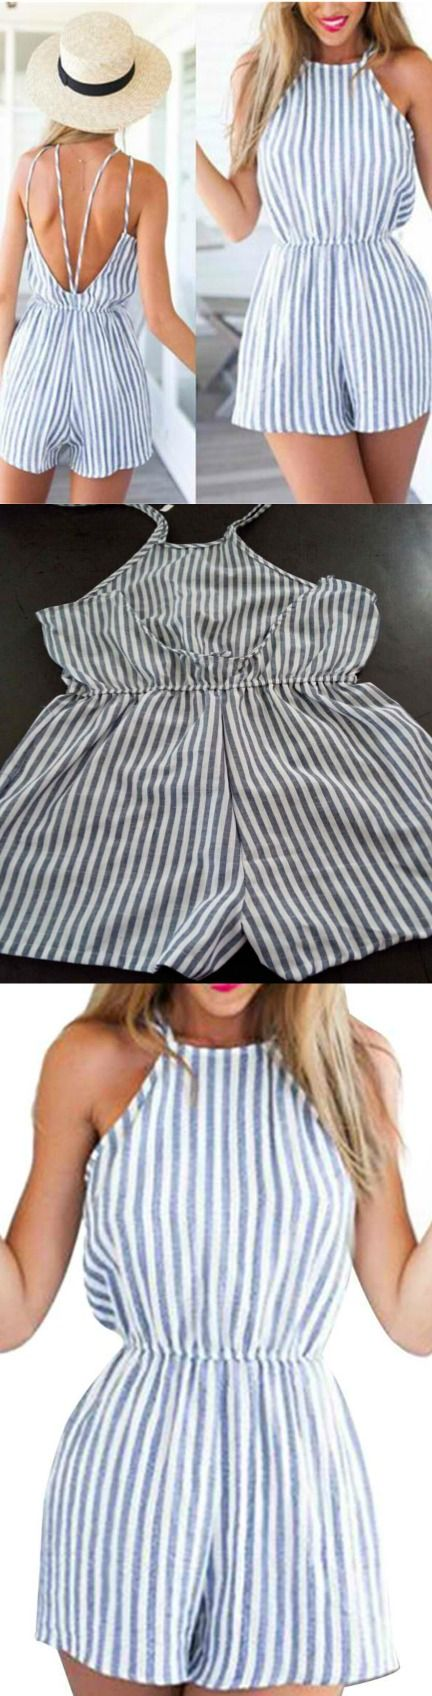 Striped Backless Playsuit! Click The Image To Buy It Now or Tag Someone You Want To Buy This For. #StripedPlaysuit